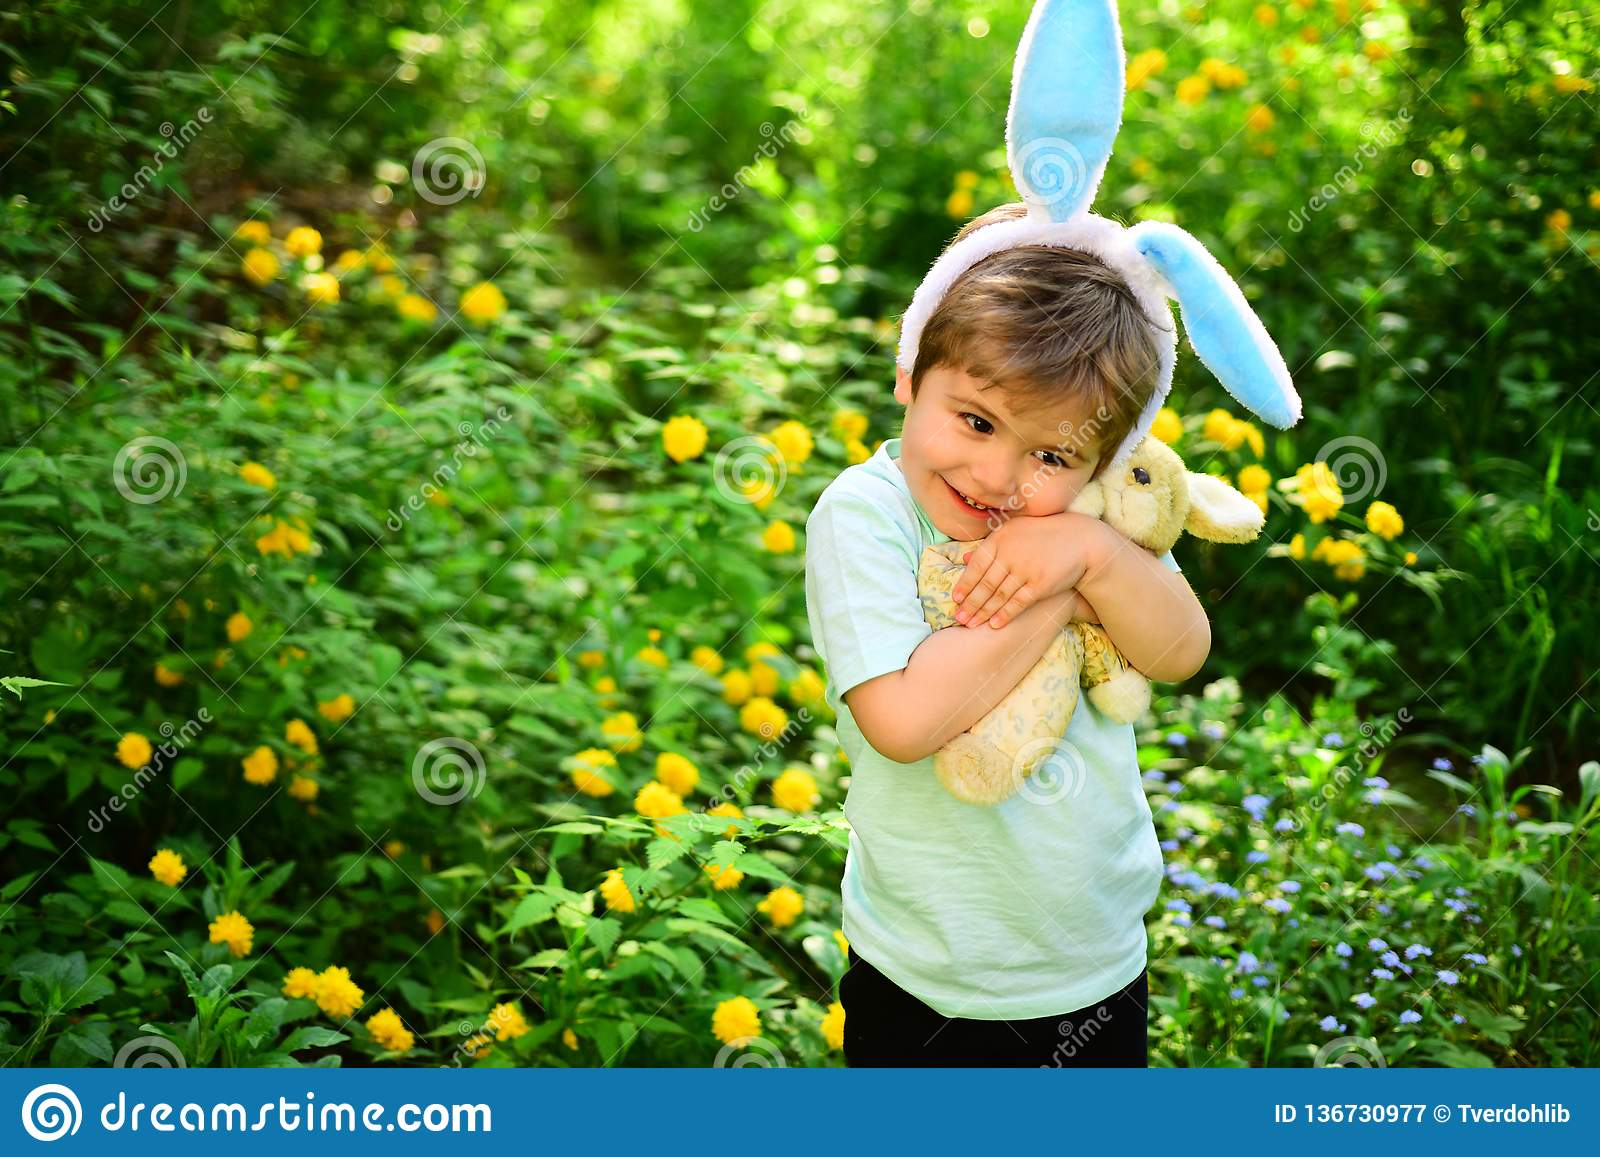 Rabbit kid with bunny ears. Hare toy. Egg hunt on spring holiday. love easter. Family holiday. Little boy child in green